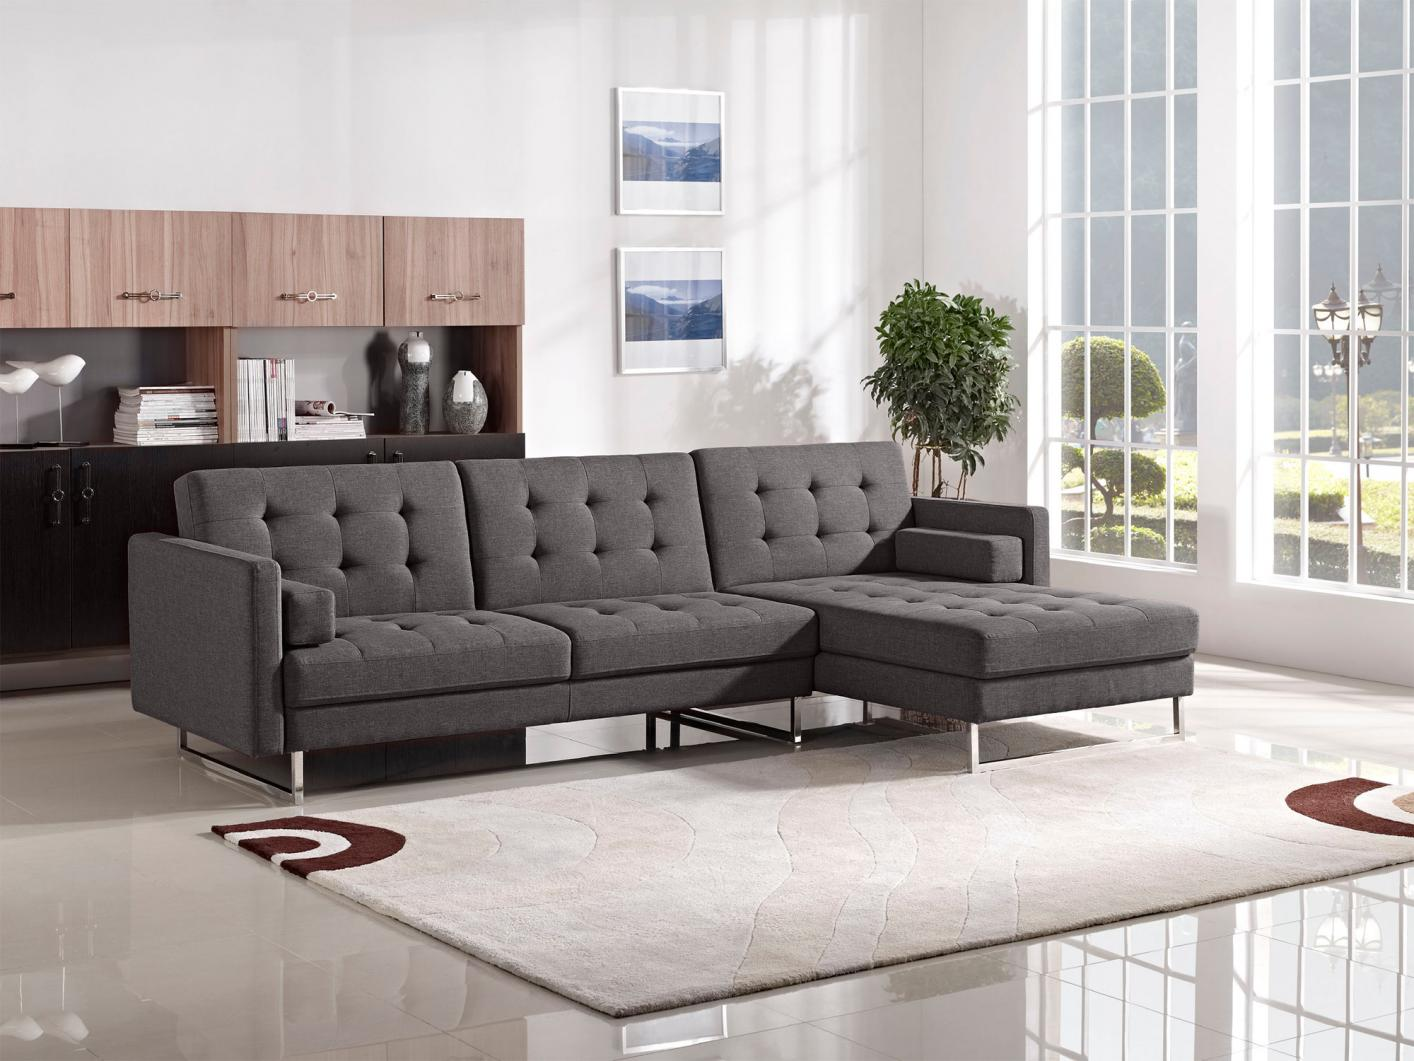 Best Diamond Sofa Opus Opusrcgr Opuslsgr Grey Fabric Sectional Sofa Bed  With Natuzzi Outlet.